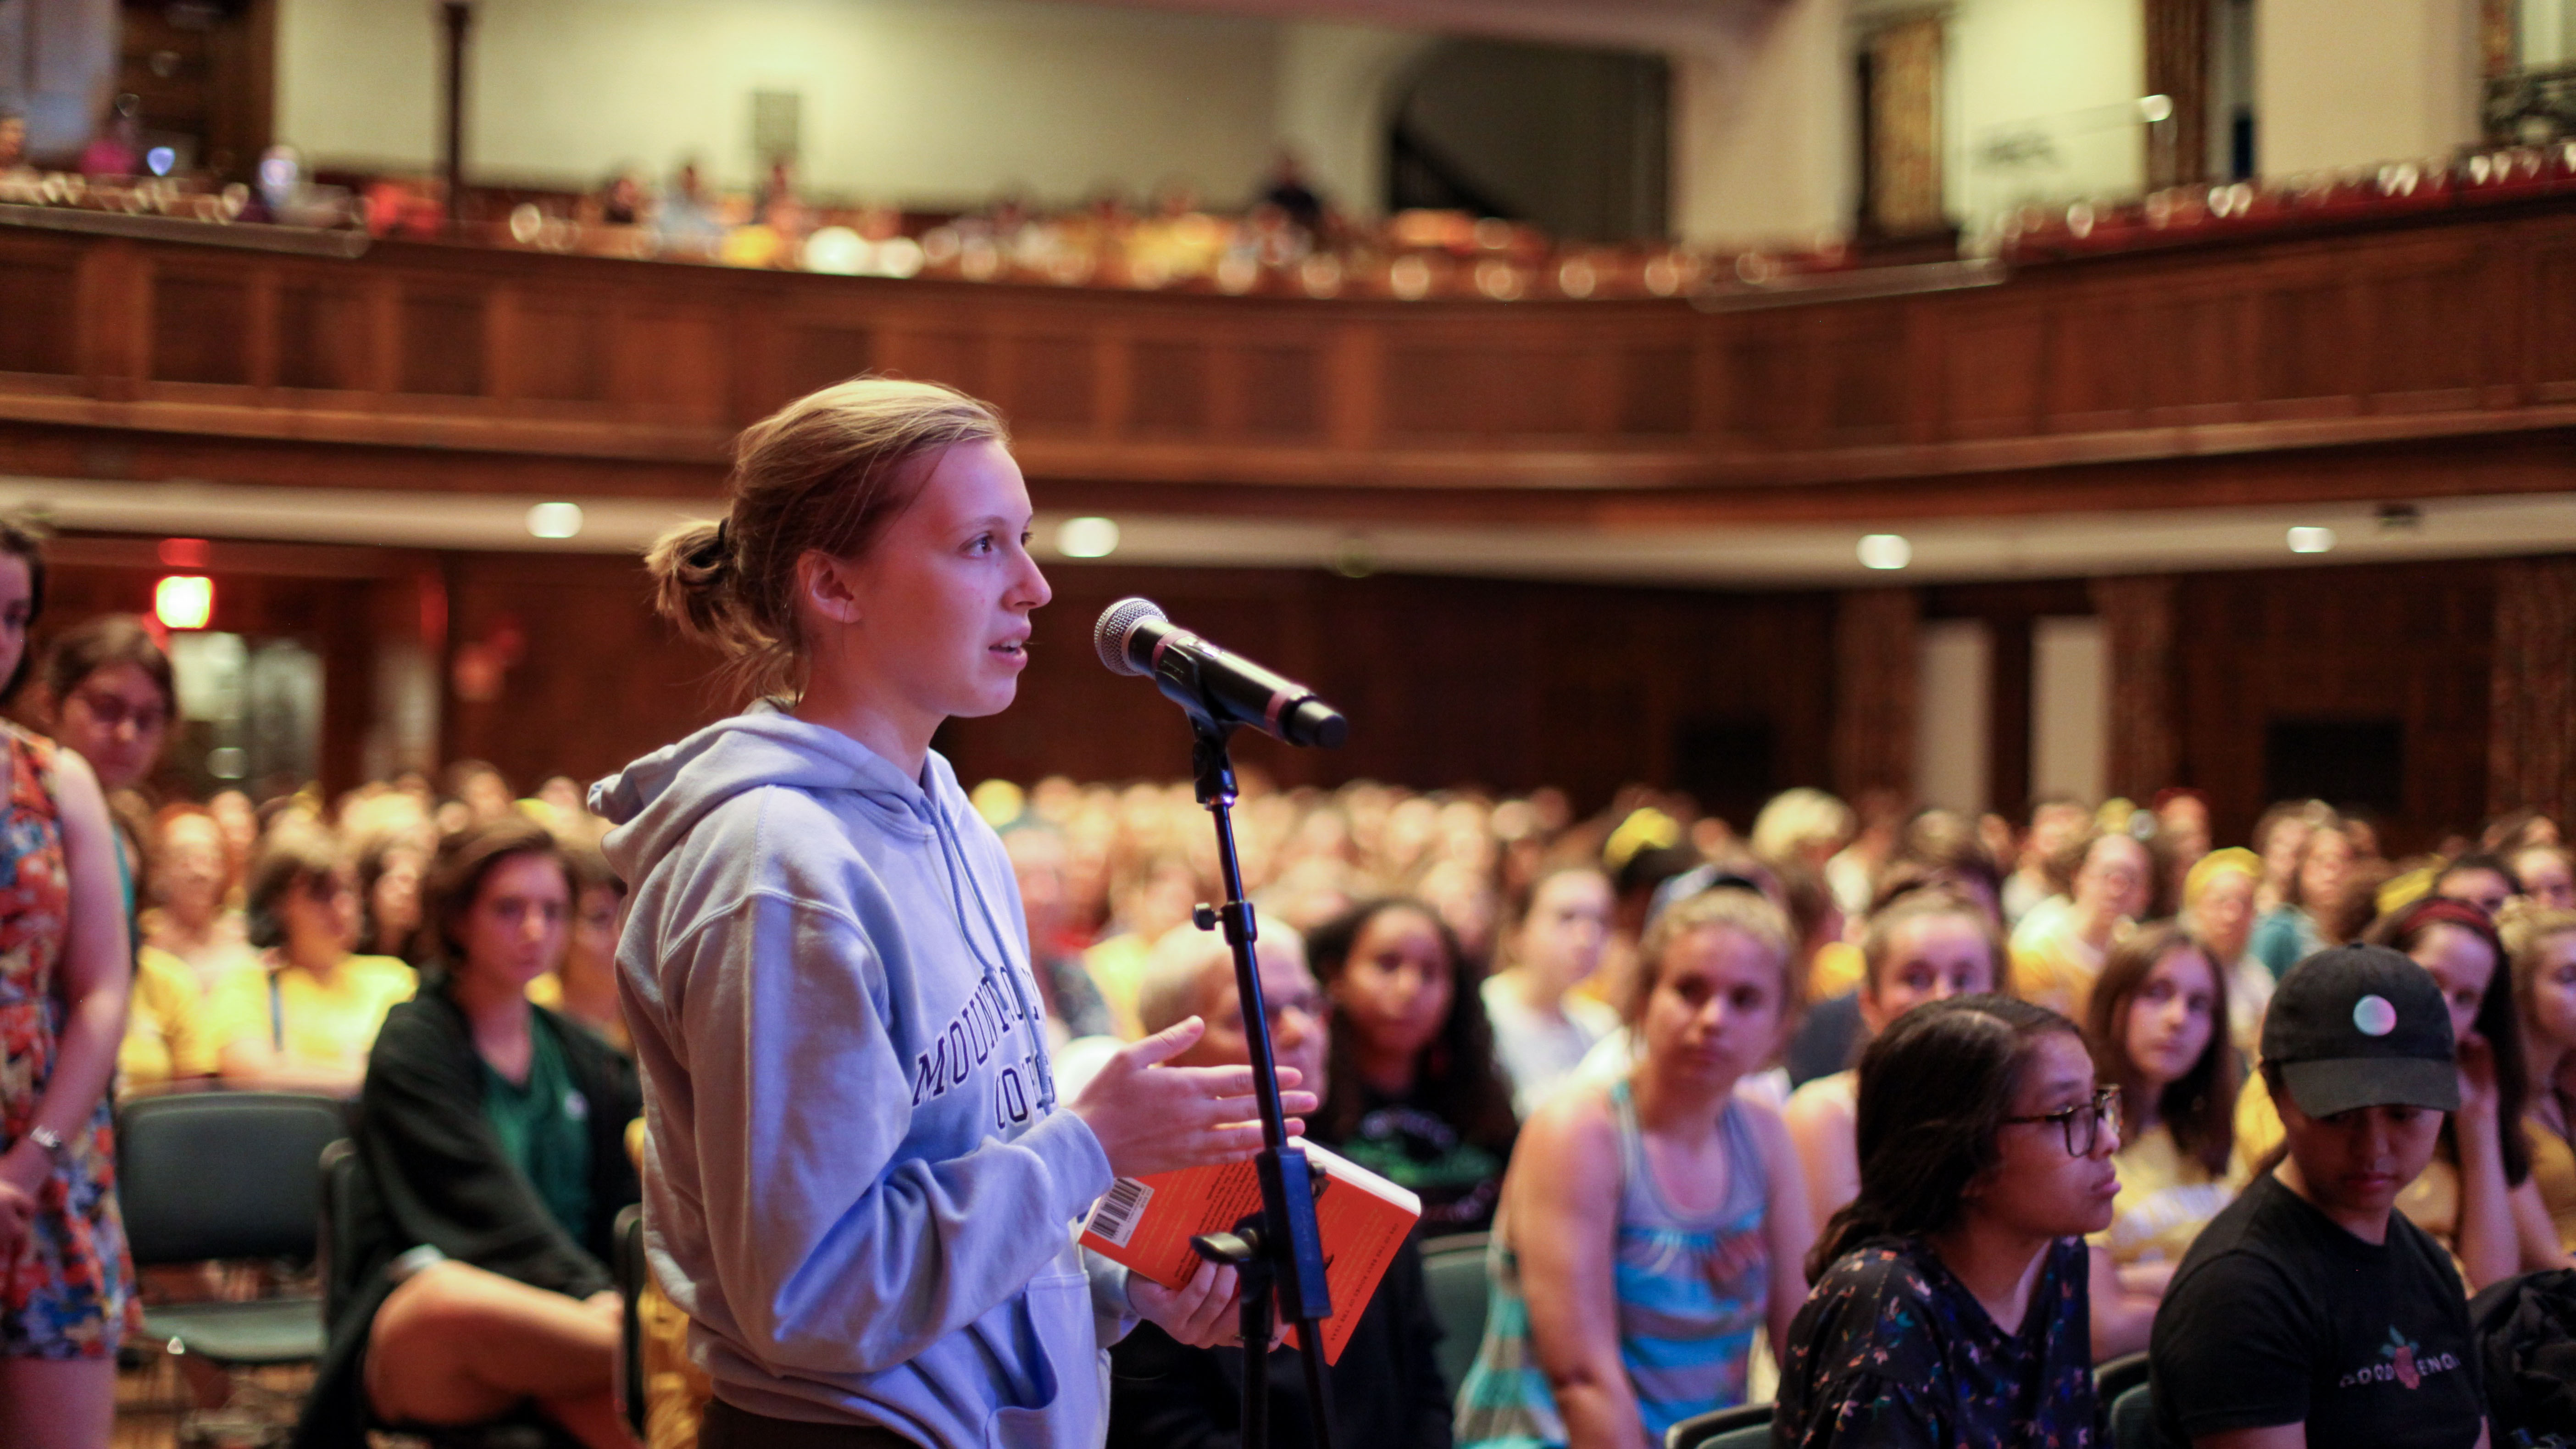 A student poses a question during the 2019 Common Read talk